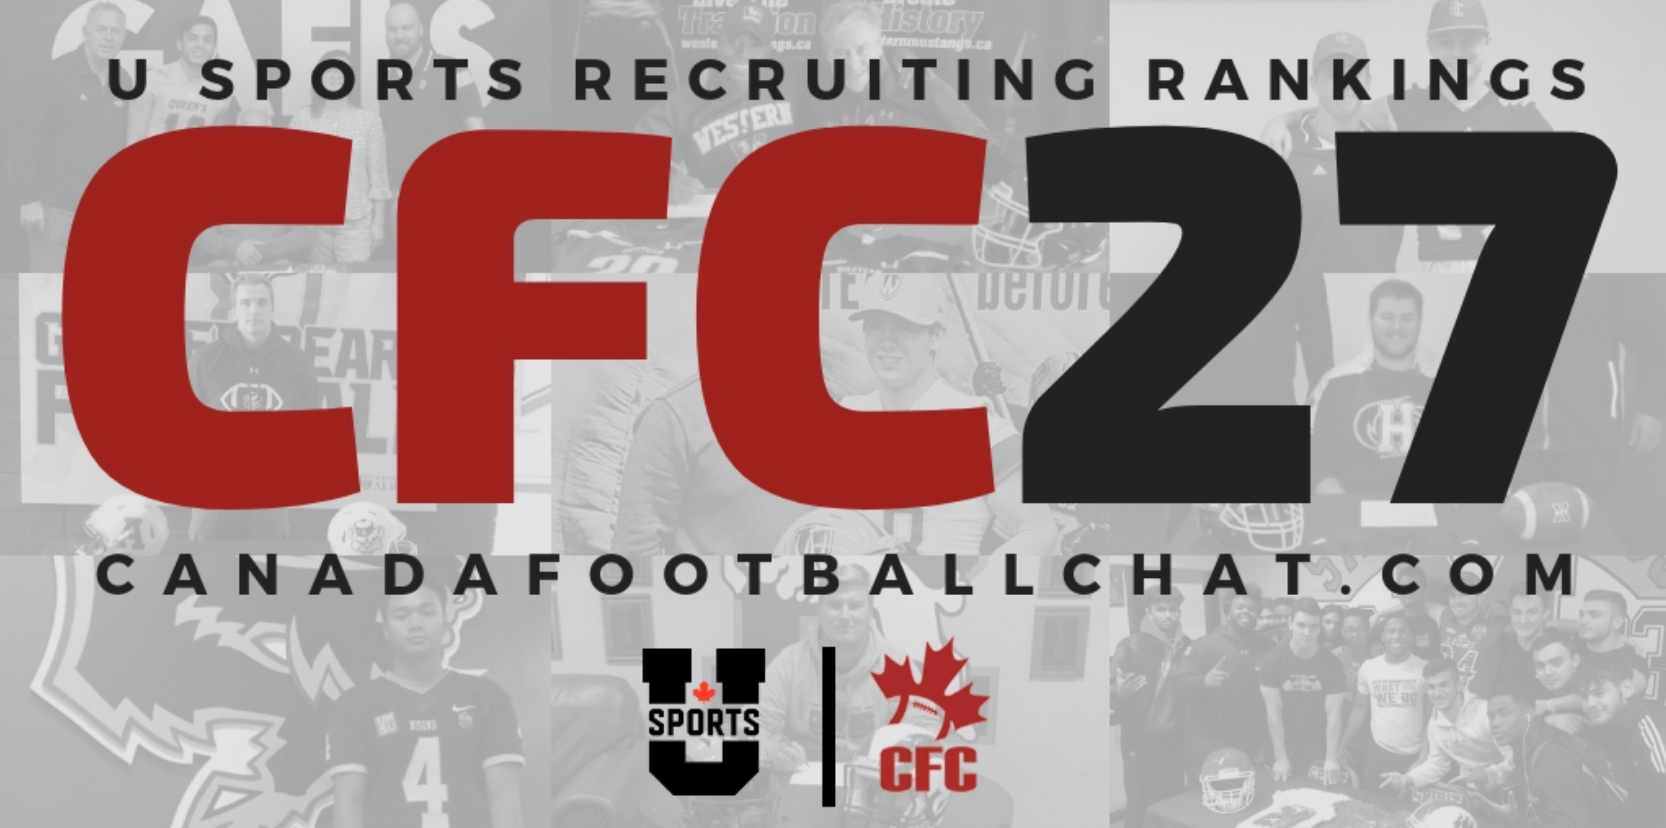 CFC27 CLASS RANKINGS (18): Western retakes the lead in total points